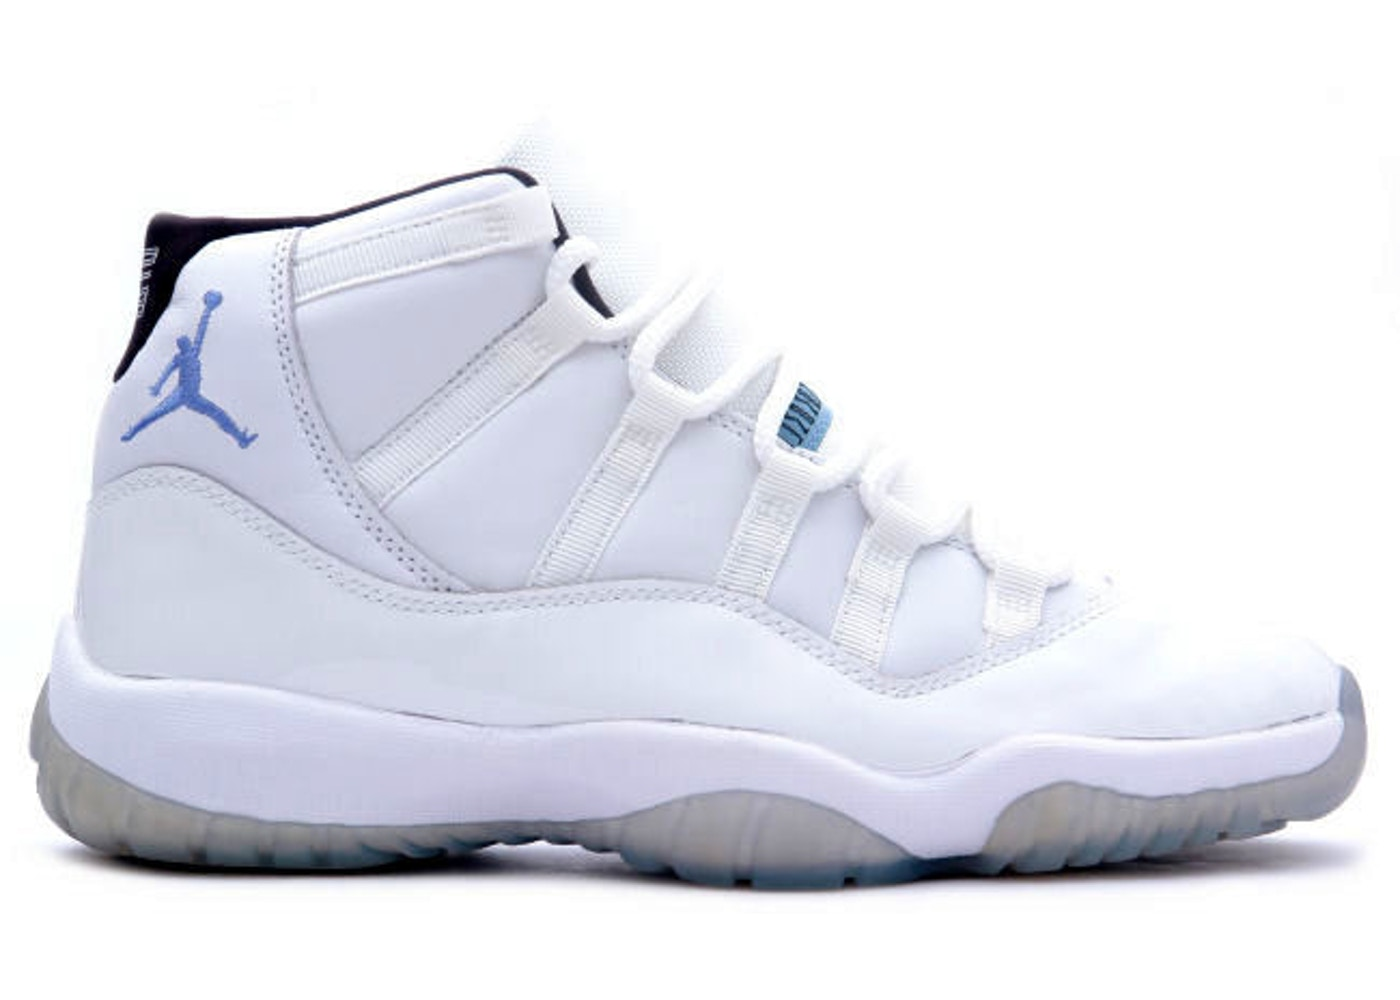 newest e60f3 19cf8 Sell. or Ask. Size: 12. View All Bids. Jordan 11 Retro Columbia ...